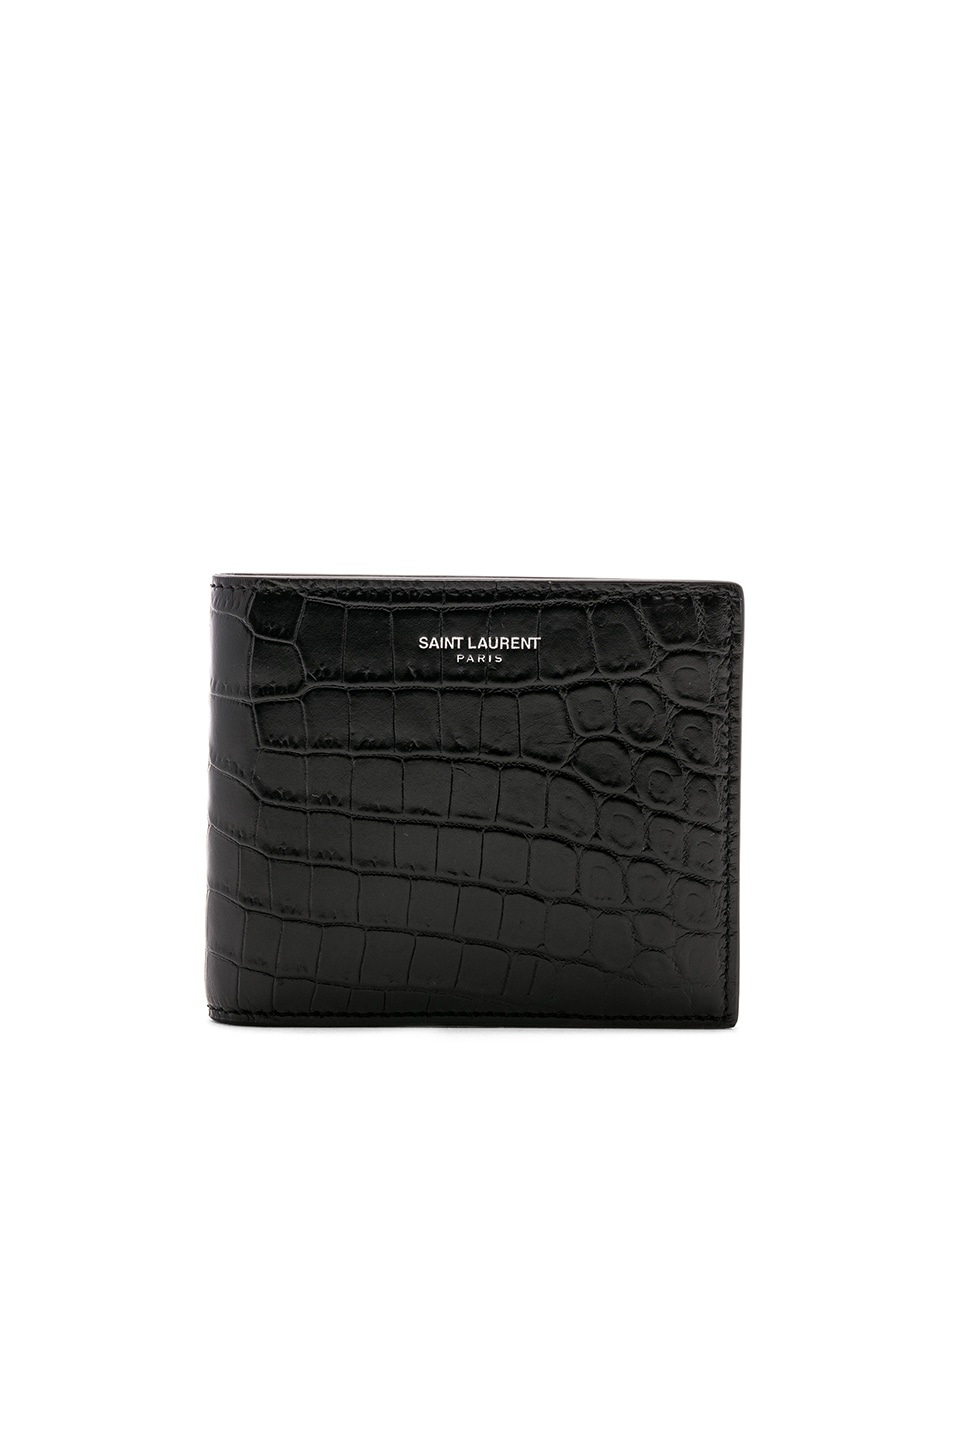 Image 1 of Saint Laurent Matte Croc Billfold Wallet in Black